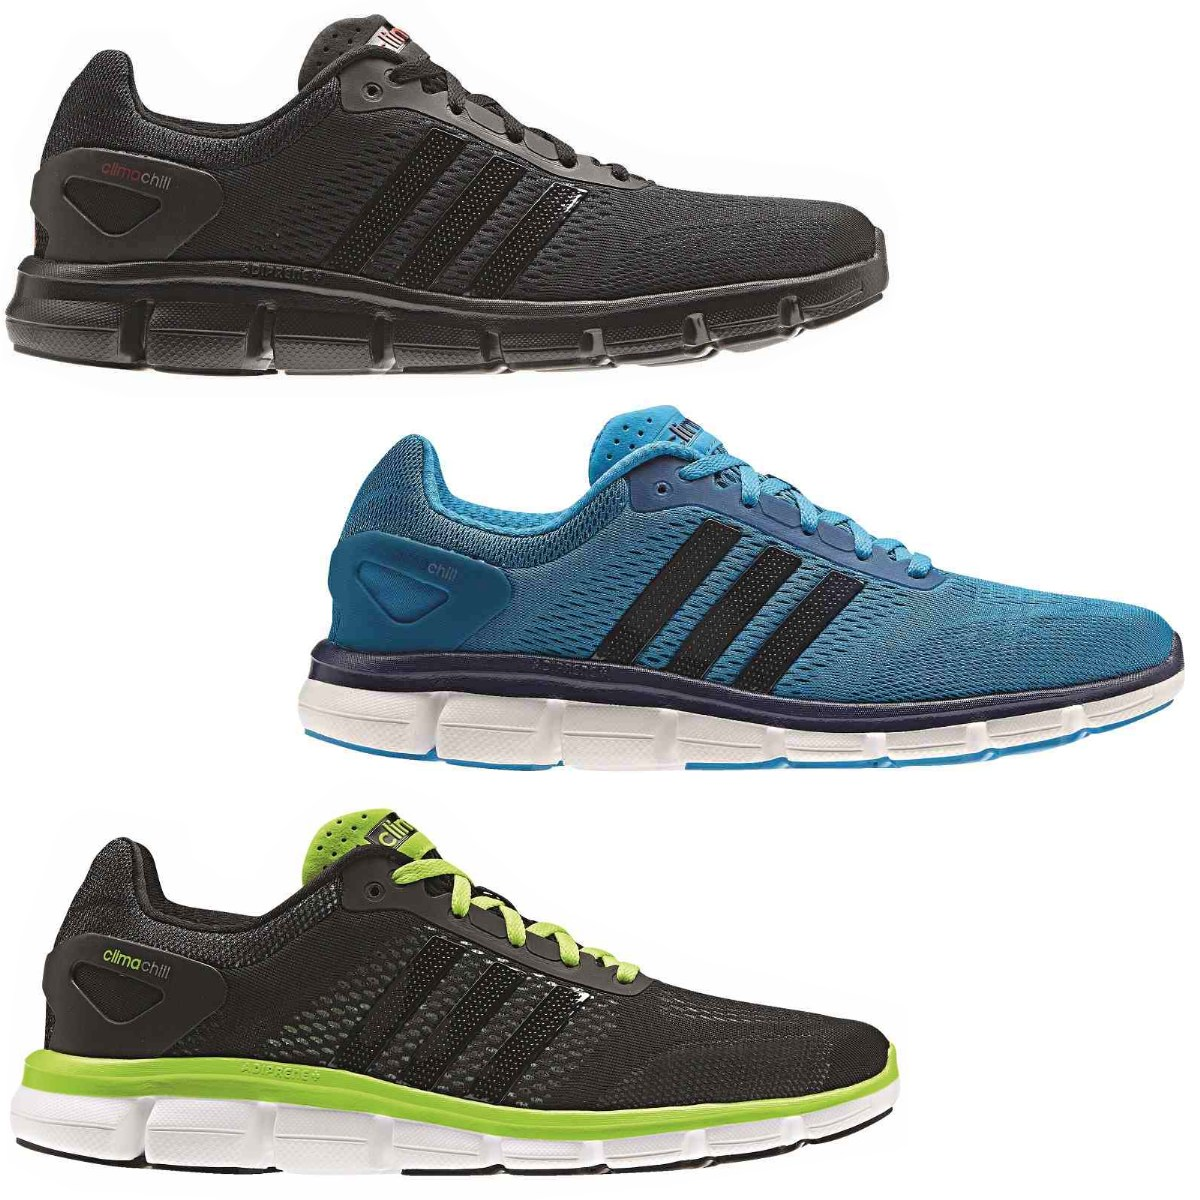 Adidas Climachill Ride Schuh